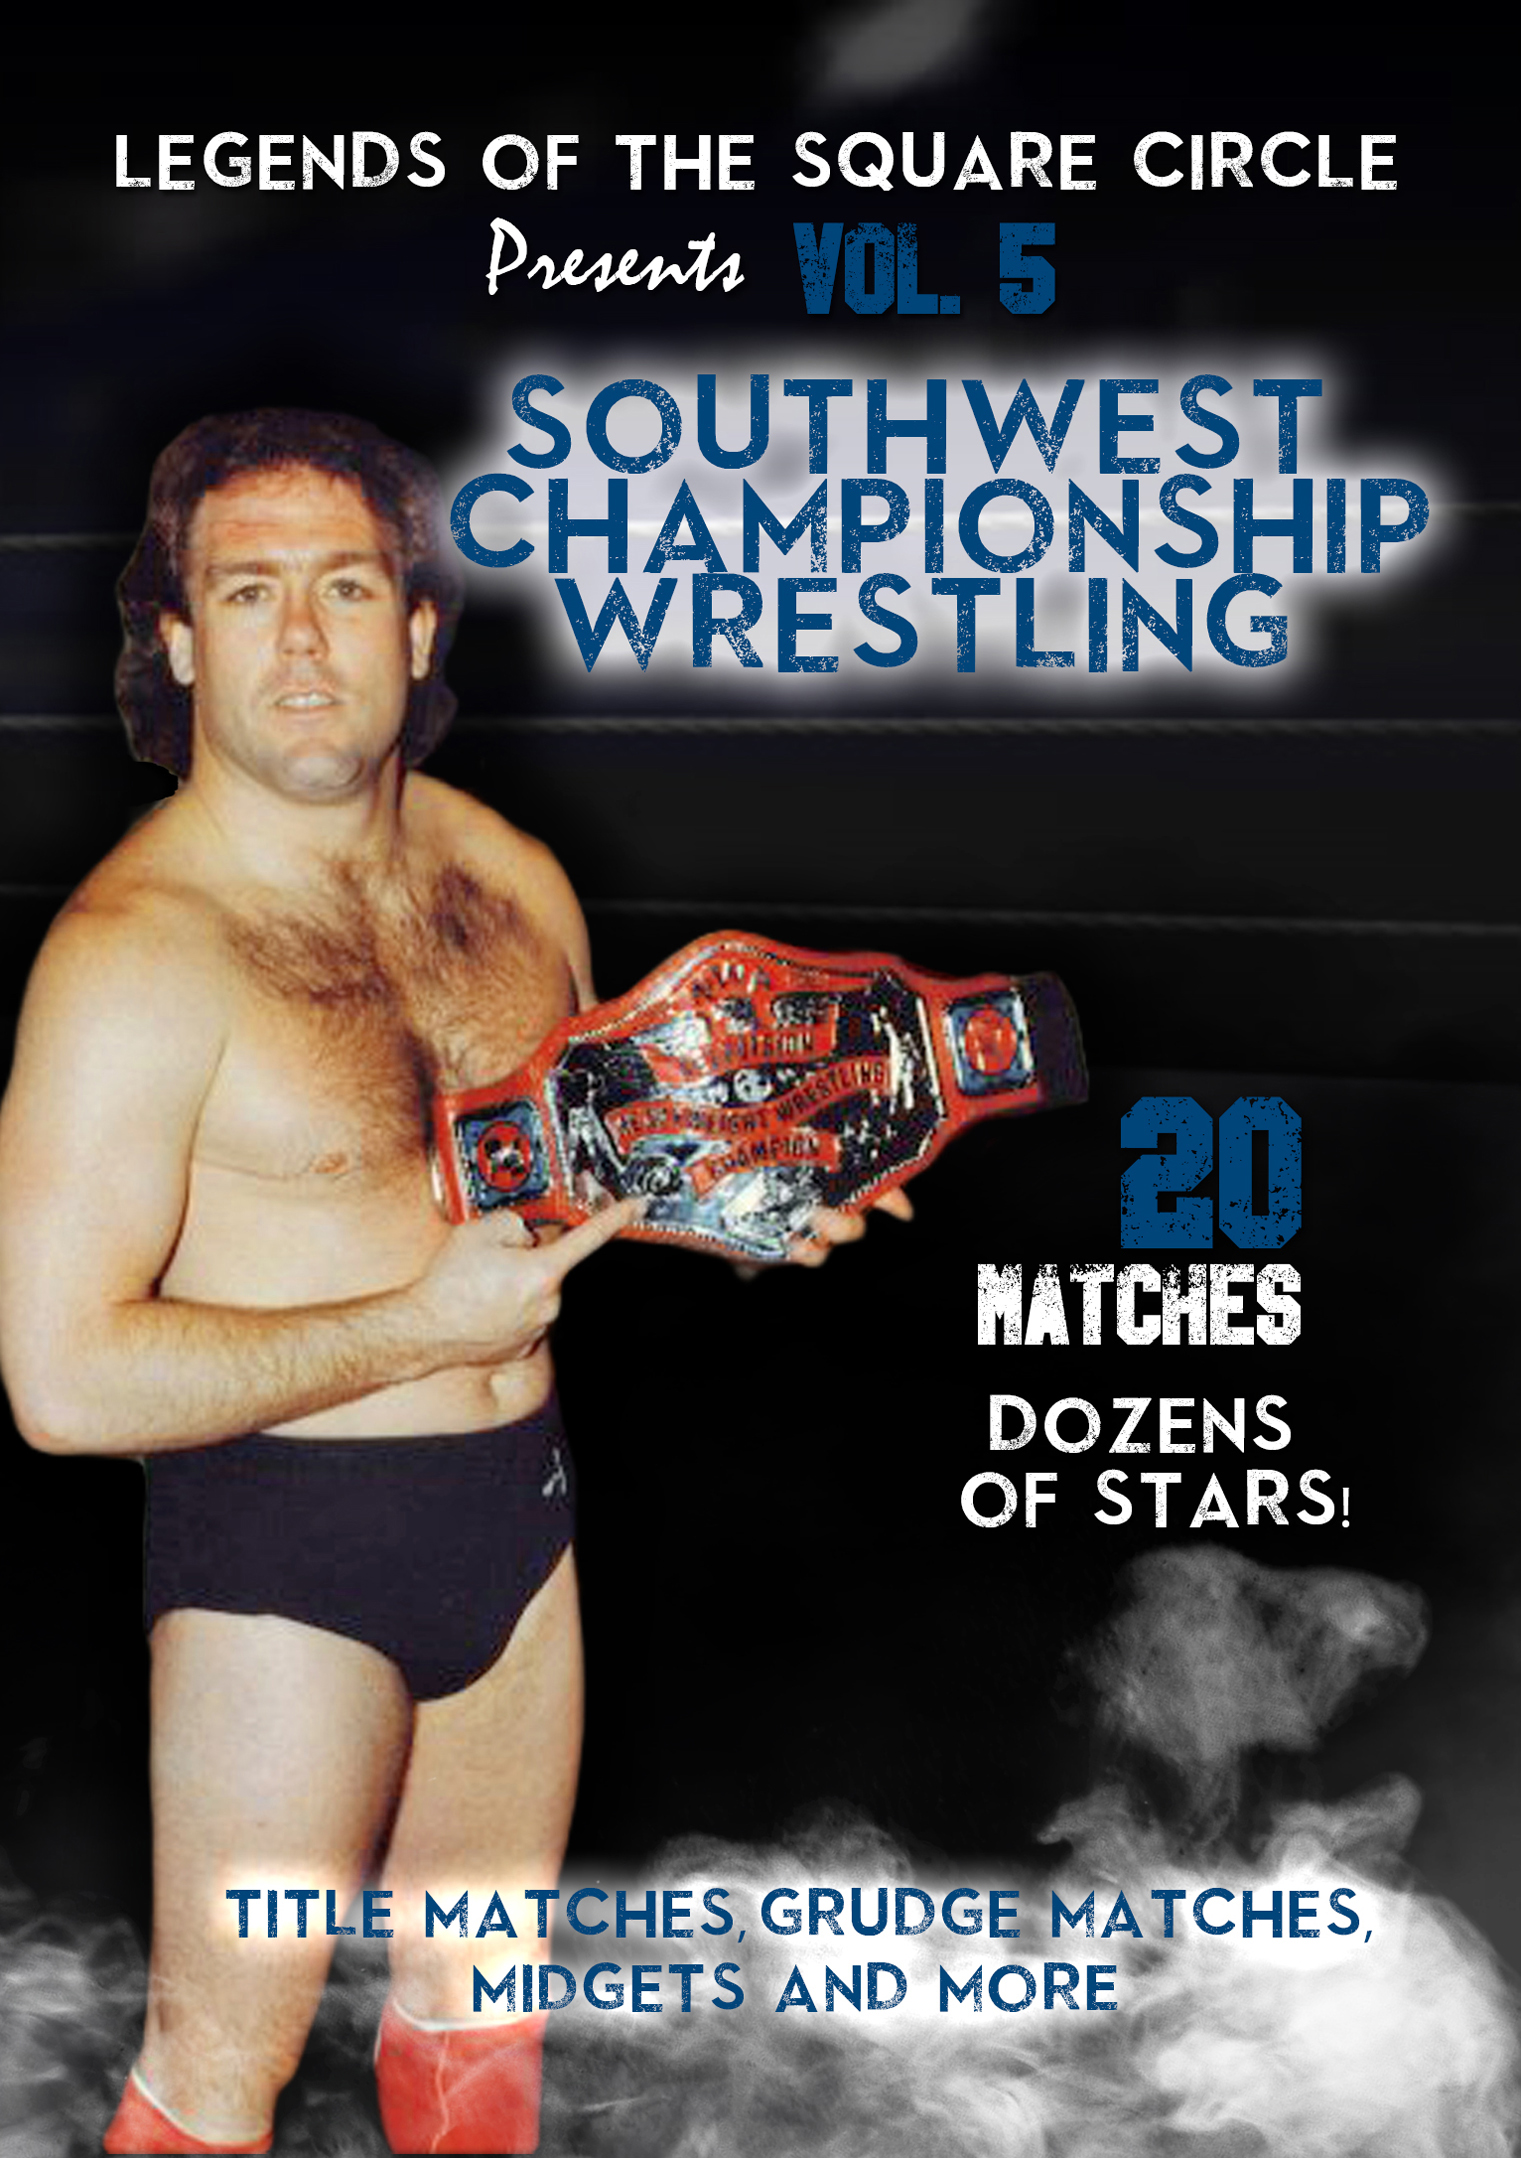 Legends of the Square Circle: Vol. 5 - Southwest Championship Wrestling